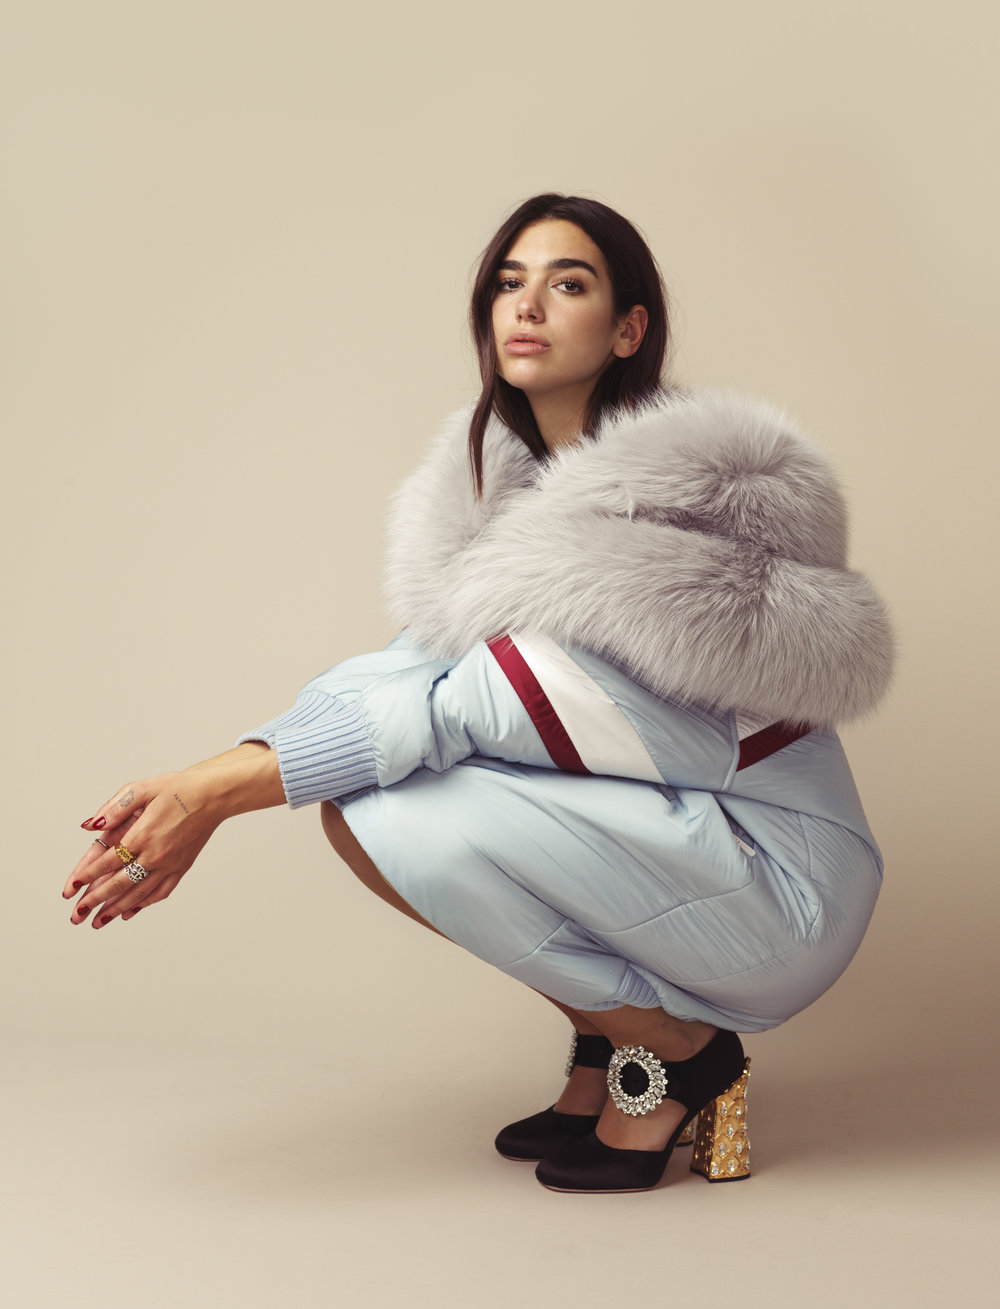 DUA LIPA | SINGER SONGWRITER